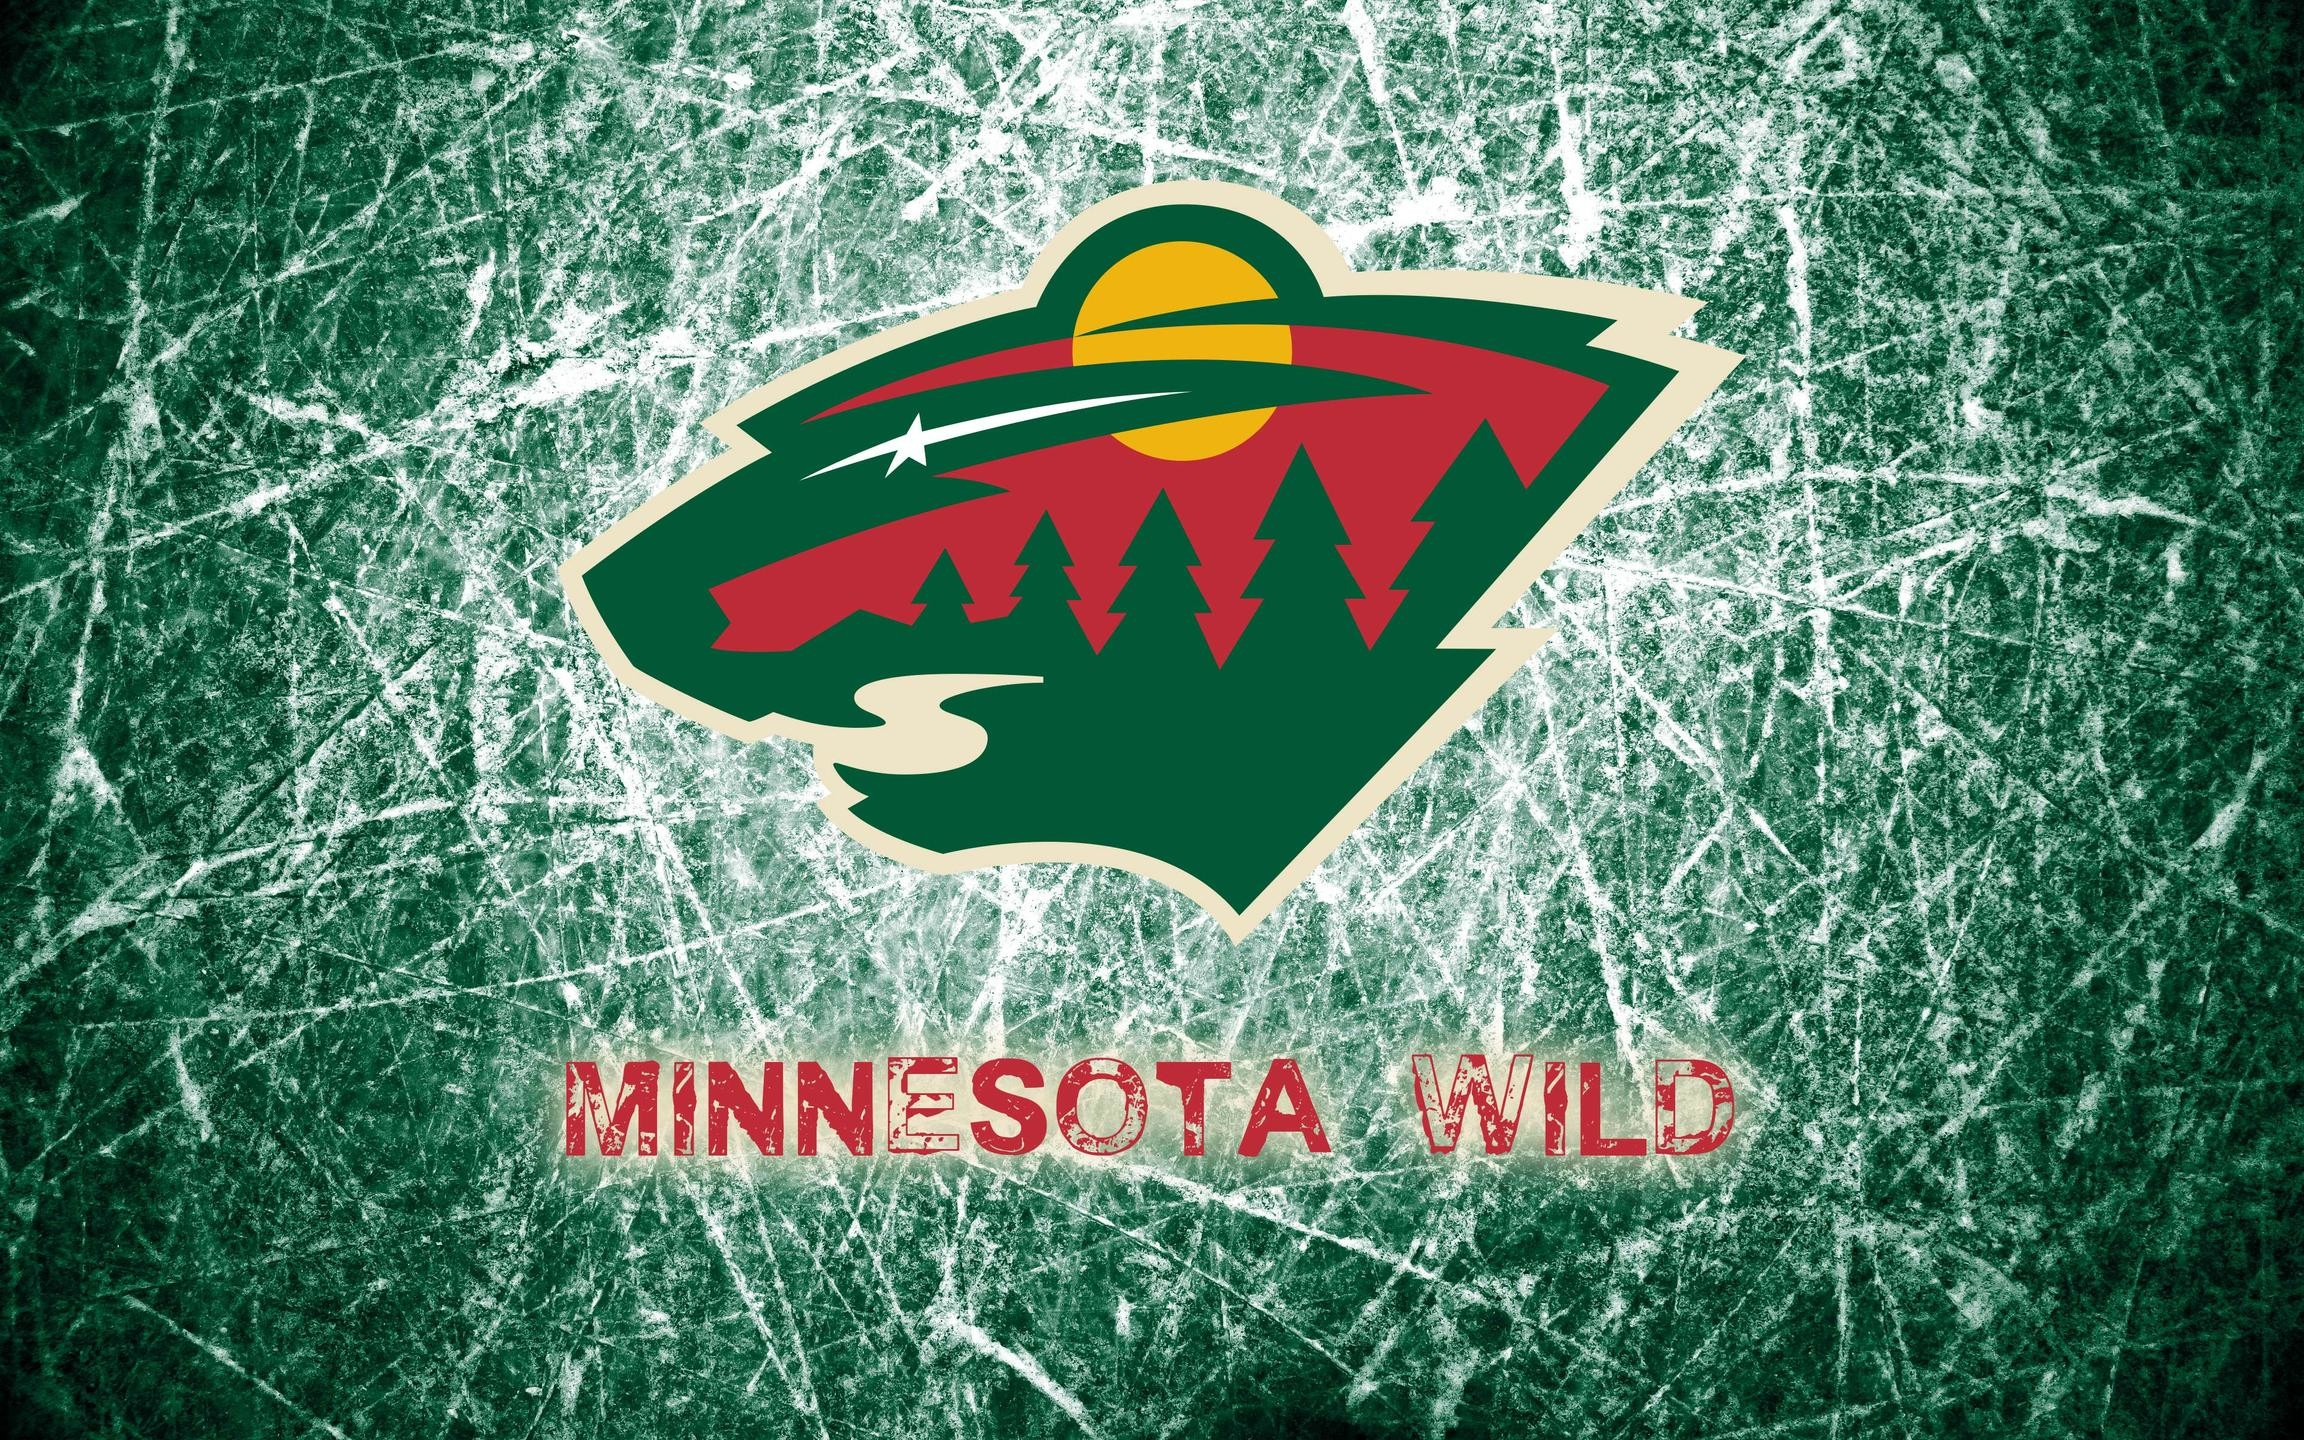 Hd mn wild wallpaper 67 images - Minnesota wild logo ...